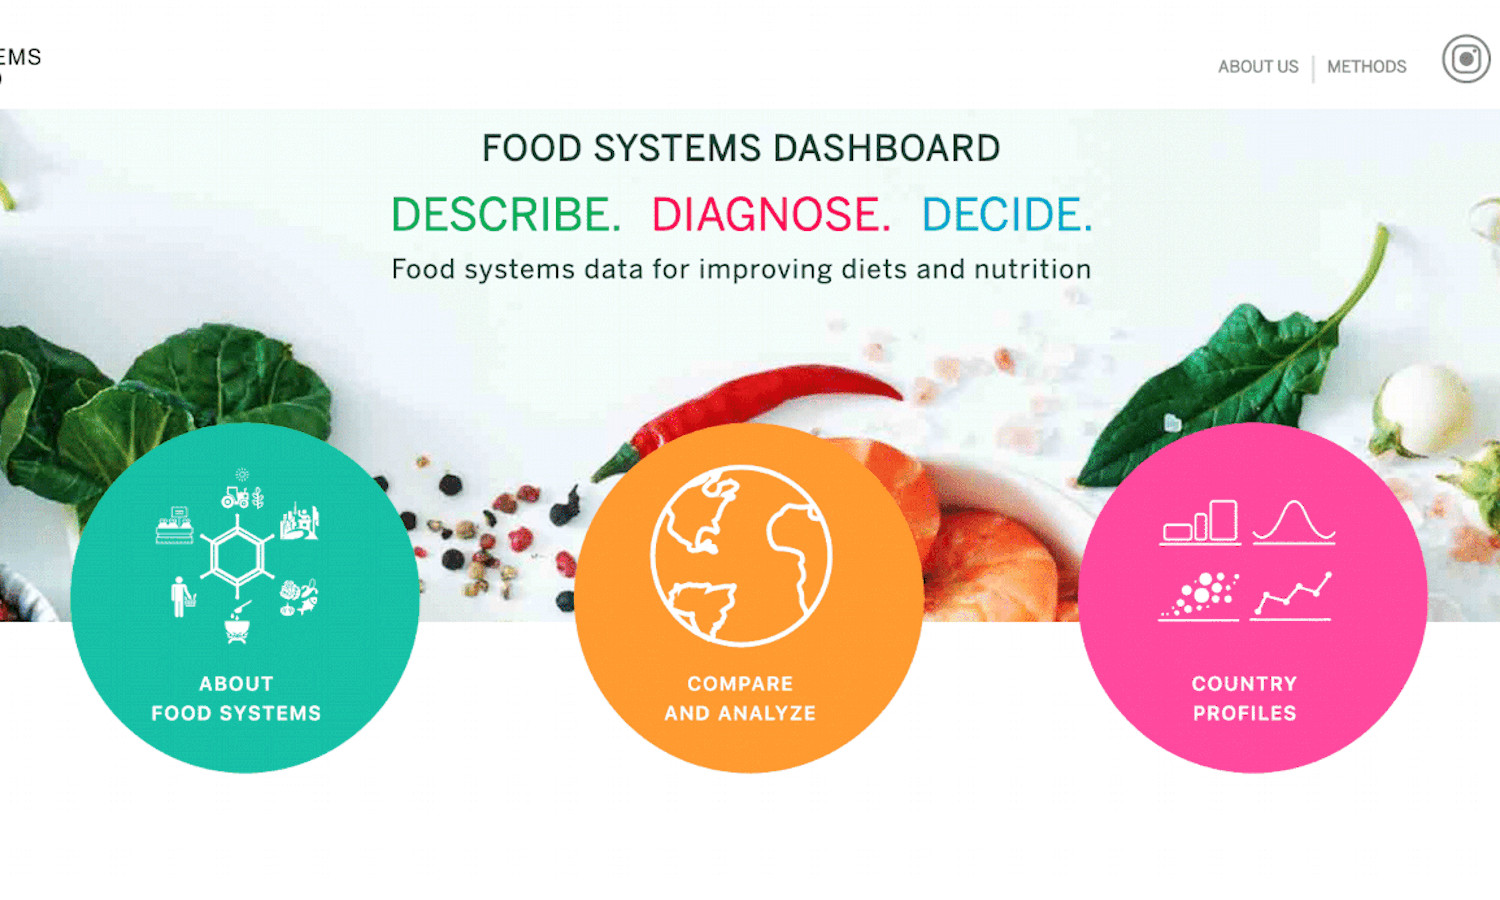 Johns Hopkins Alliance for a Healthier World, GAIN, and FAO, created the Food Systems Dashboard to bring together necessary data to paint a full picture of more than 230 countries' food systems.